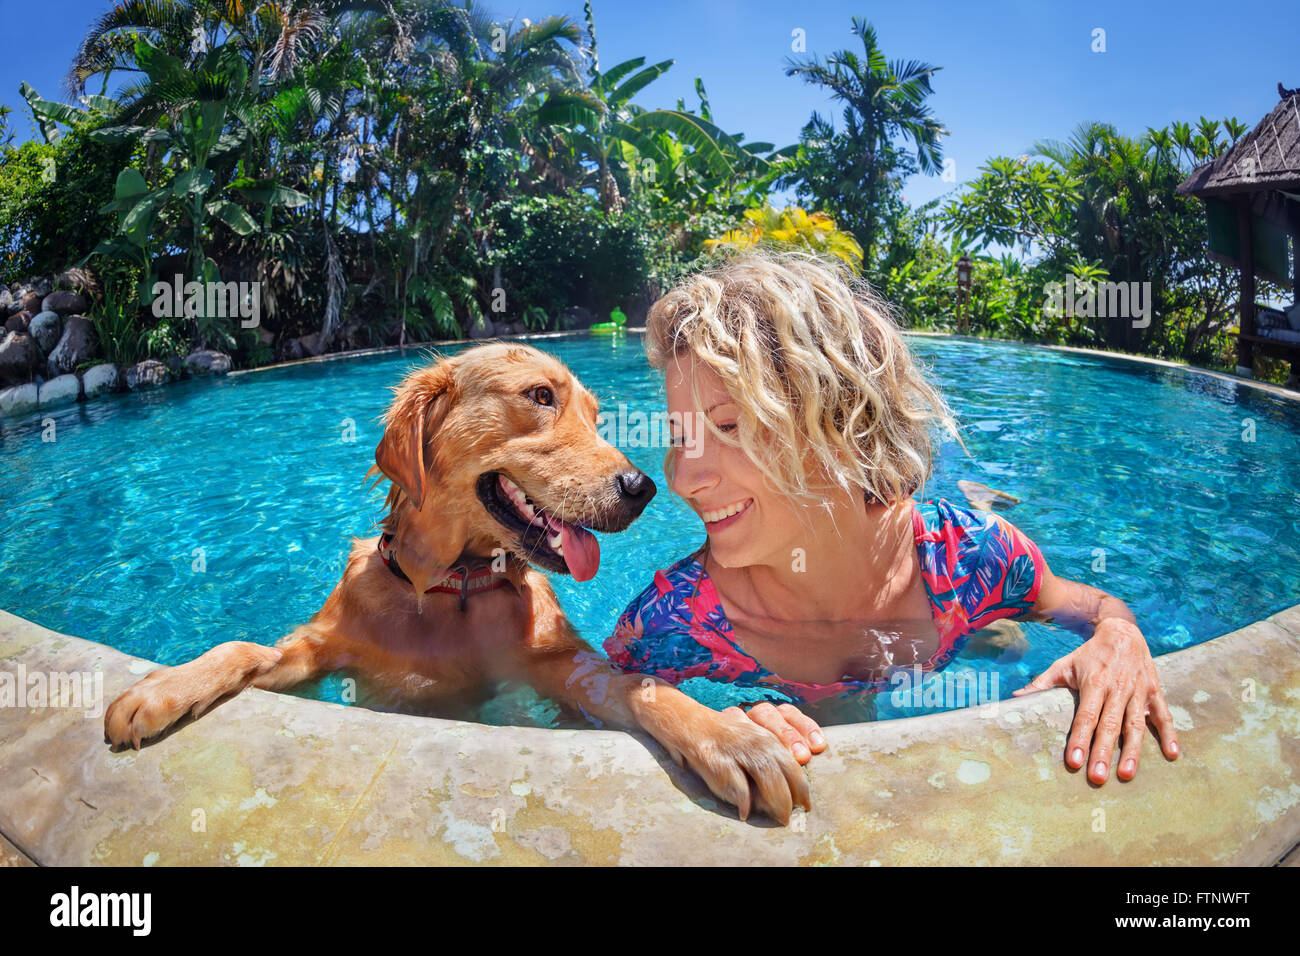 Funny portrait of smiley woman playing with fun and training golden retriever puppy in outdoor swimming pool. - Stock Image